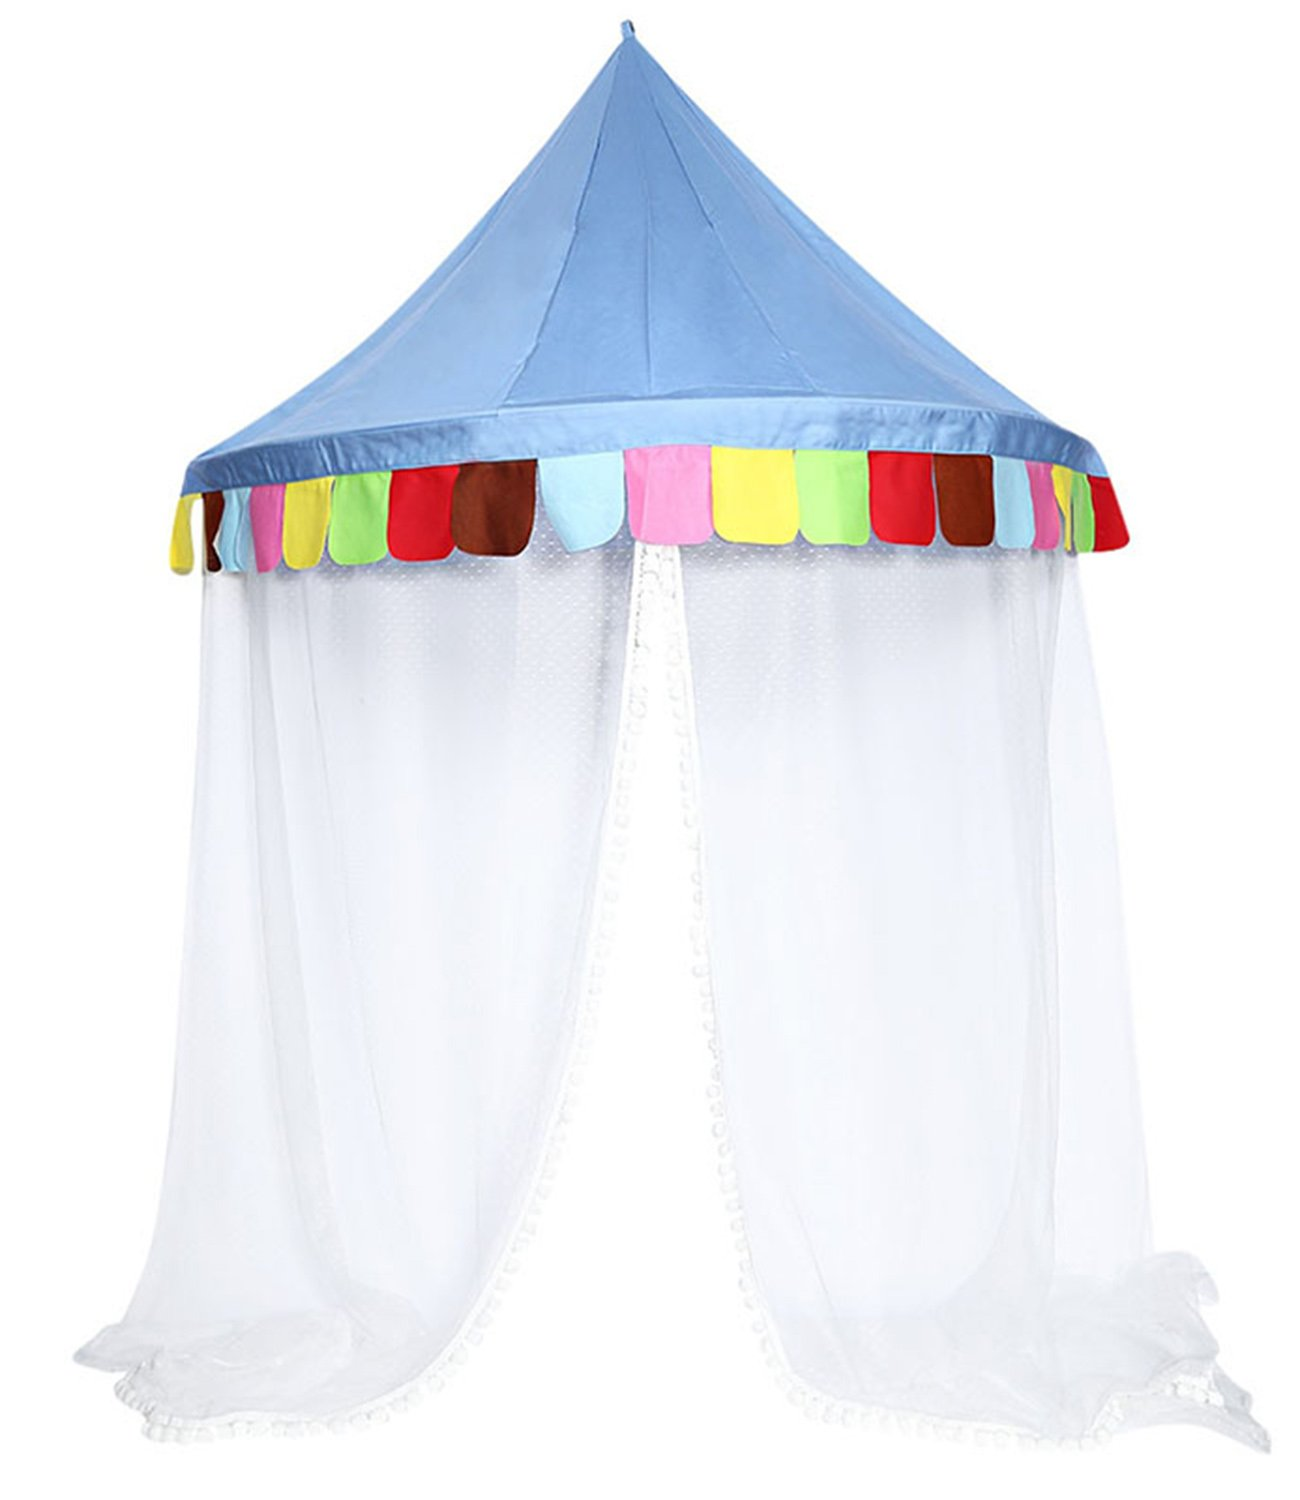 DANCHEL Bed Canopy Kids Play Tent Mosquito Net for Children's Reading Toy Area(Free Non-Trace Nail)(Blue,L)